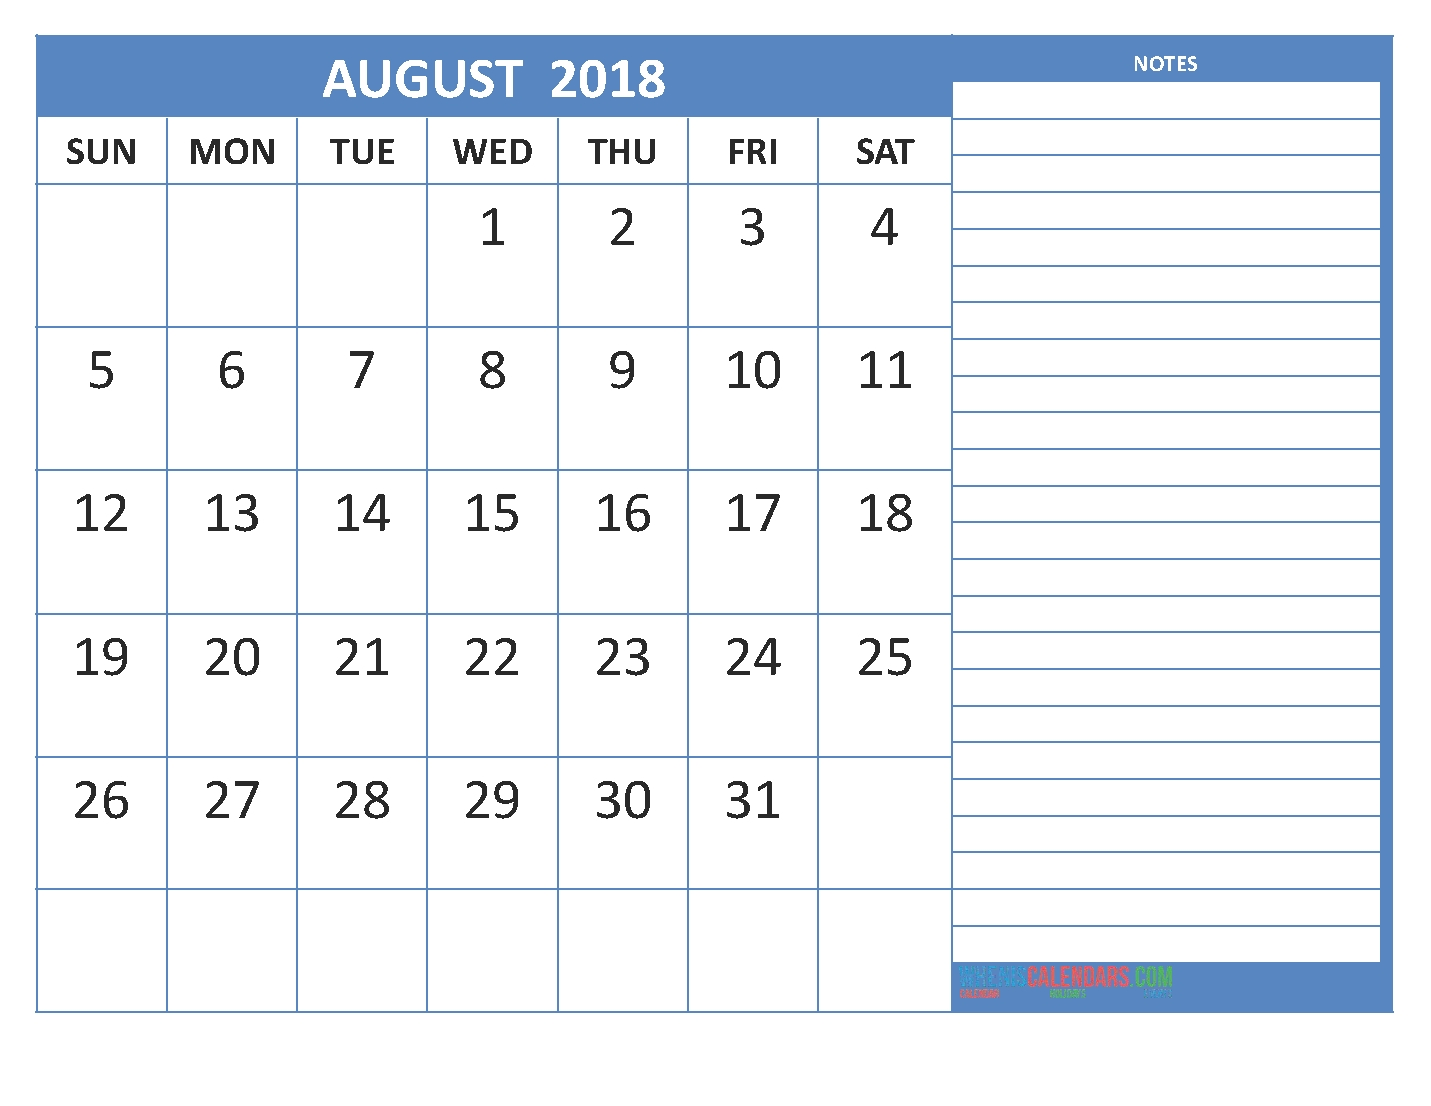 august 2018 monthly calendar printable templates printable Calendar August 2018 Printable Template erdferdf